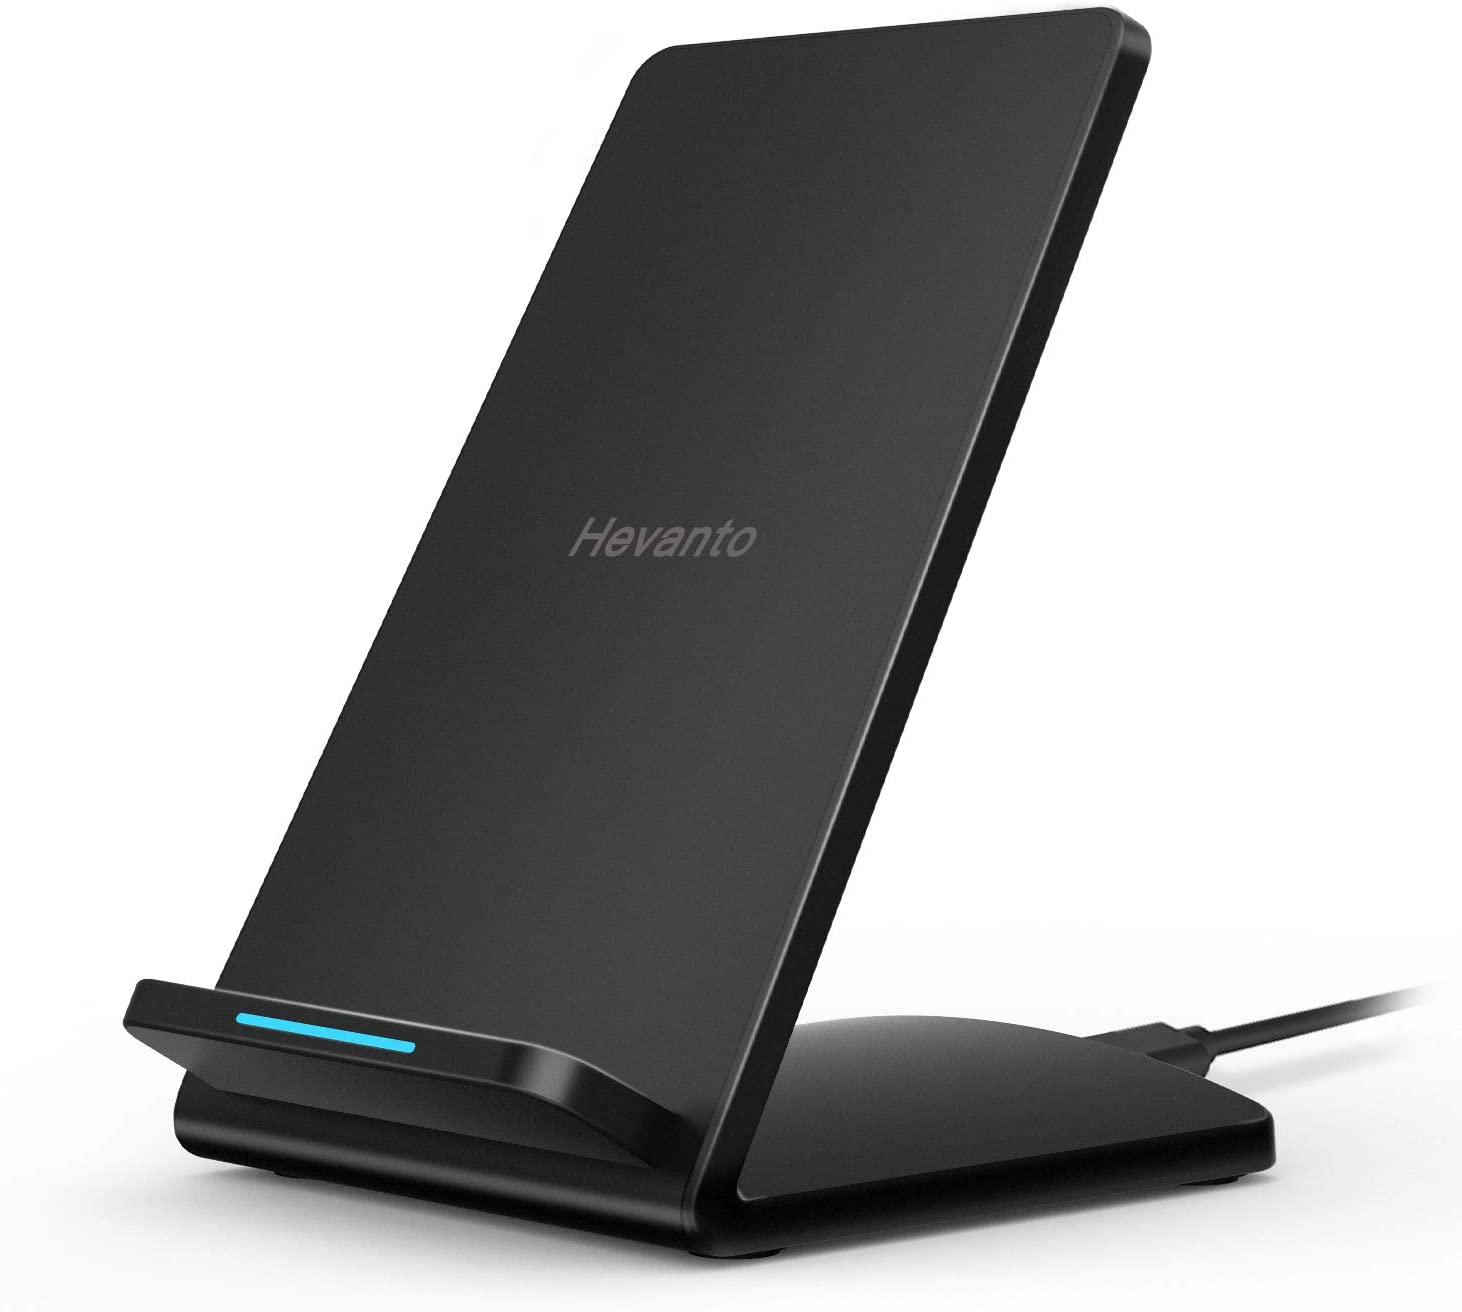 Hevanto Fast Wireless Charger, [QI-Certified] Top Speed Wireless Charging Stand, 7.5W for iPhone Xs Max/Xs/XR/X/8 Plus, 10W for Galaxy Note 10/Note 10+/Note 8/S10/S10+/S10e/S9/S9+ S8/S8+ (NO Adapter)